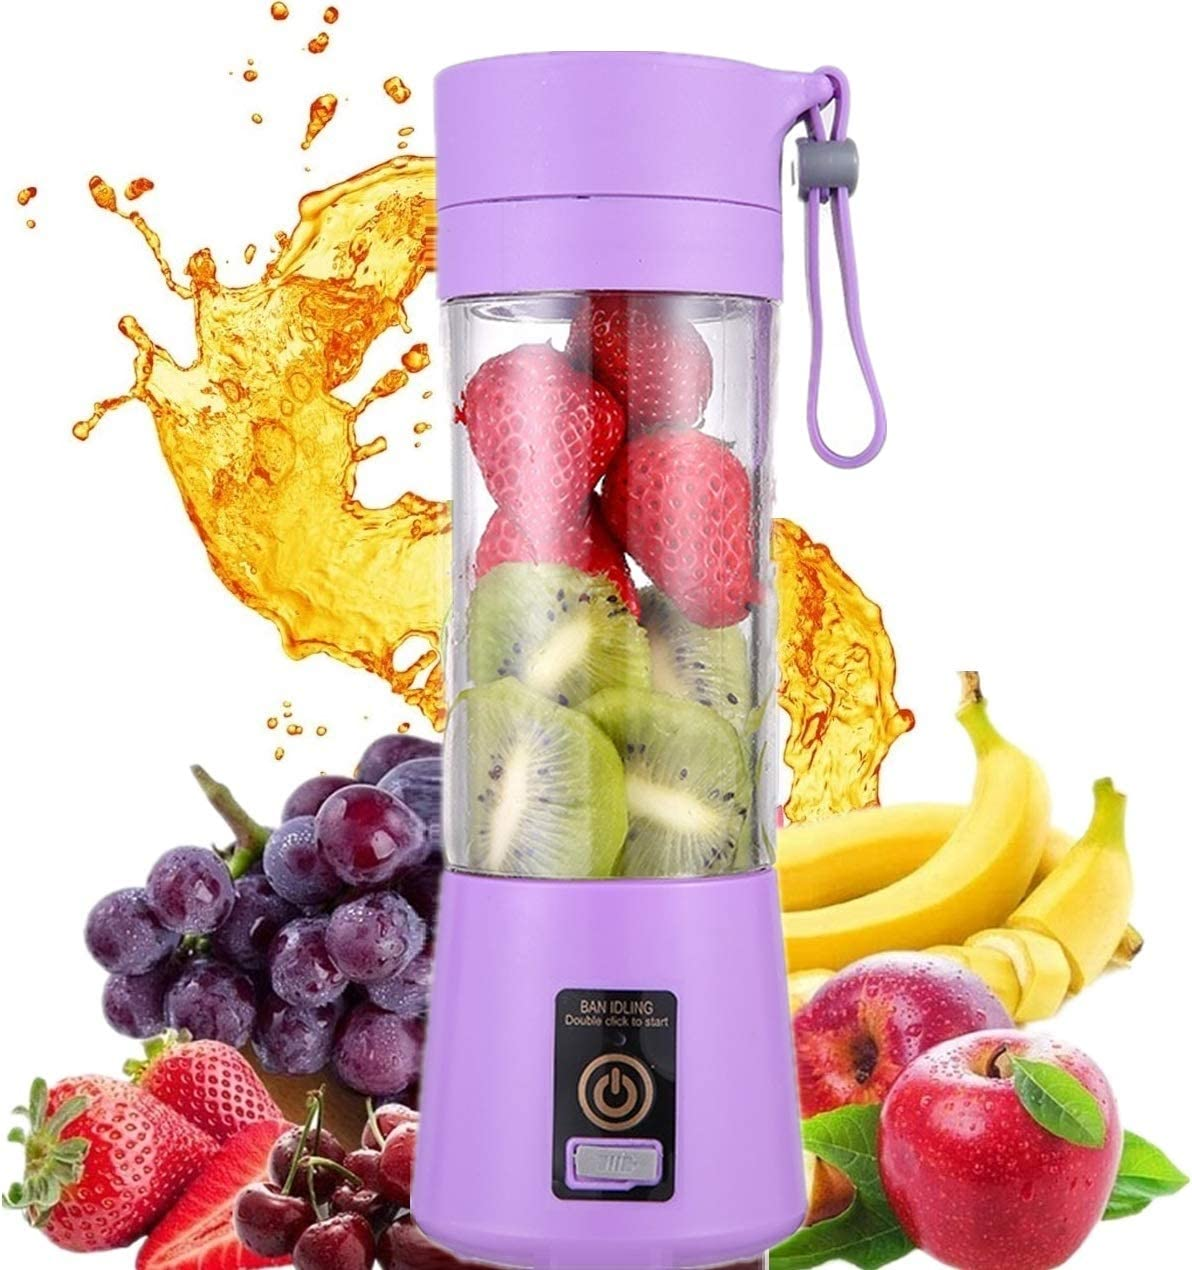 HANBO Electric Portable Juicer Blender Cup, Household Fruit Mixer with Six Blades in 3D, 380ml USB Rechargeable Juice Blender Magnetic Secure Switch Electric Fruit Mixer (Purple)